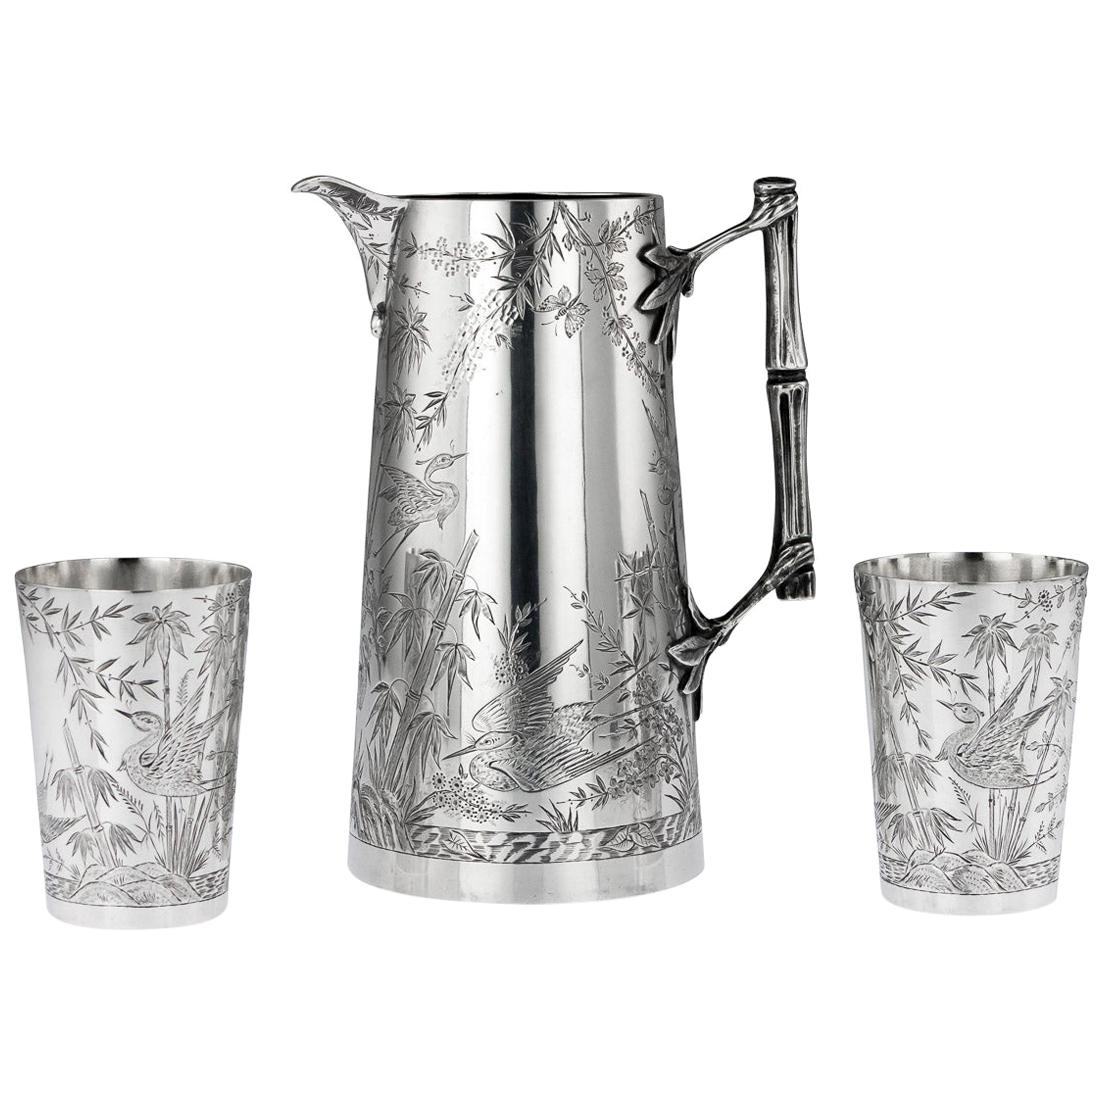 19th Century Victorian Aesthetic Movement Silver Jug and Beakers, circa 1883